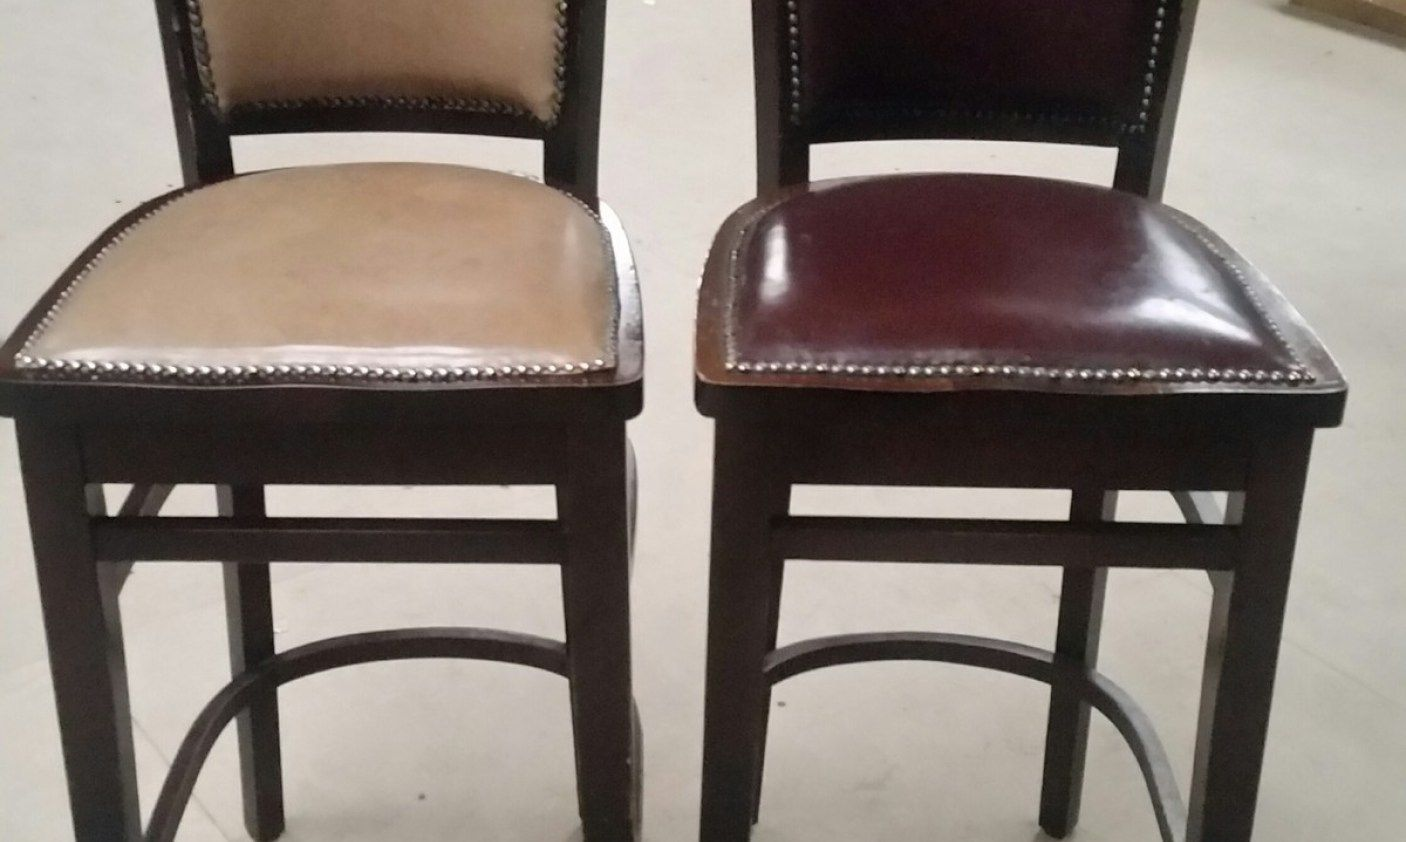 2019 Chesterfield Style Bar Stool Luxury